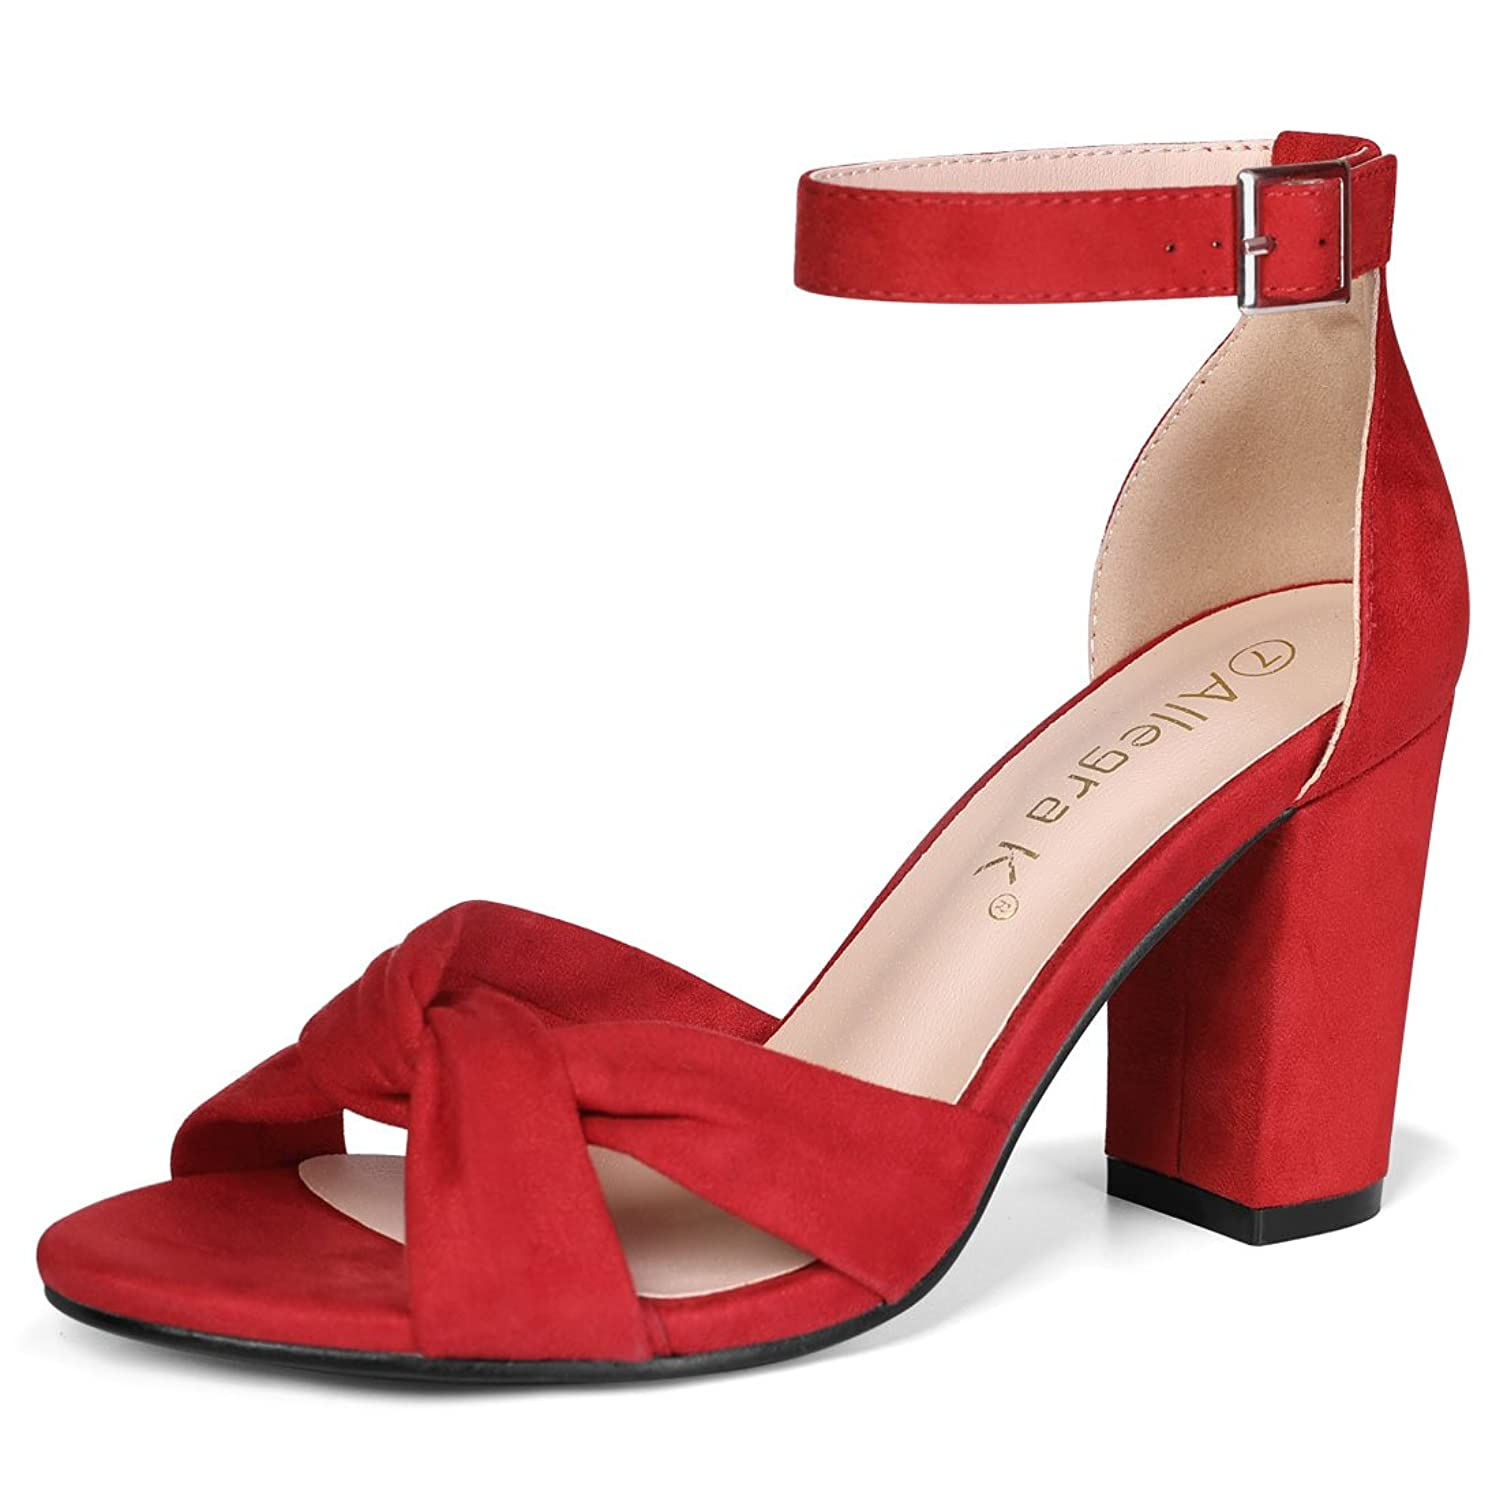 ca9c1fbef4 Allegra K Women's Knotted Ankle Strap Chunky Heel Sandals ...